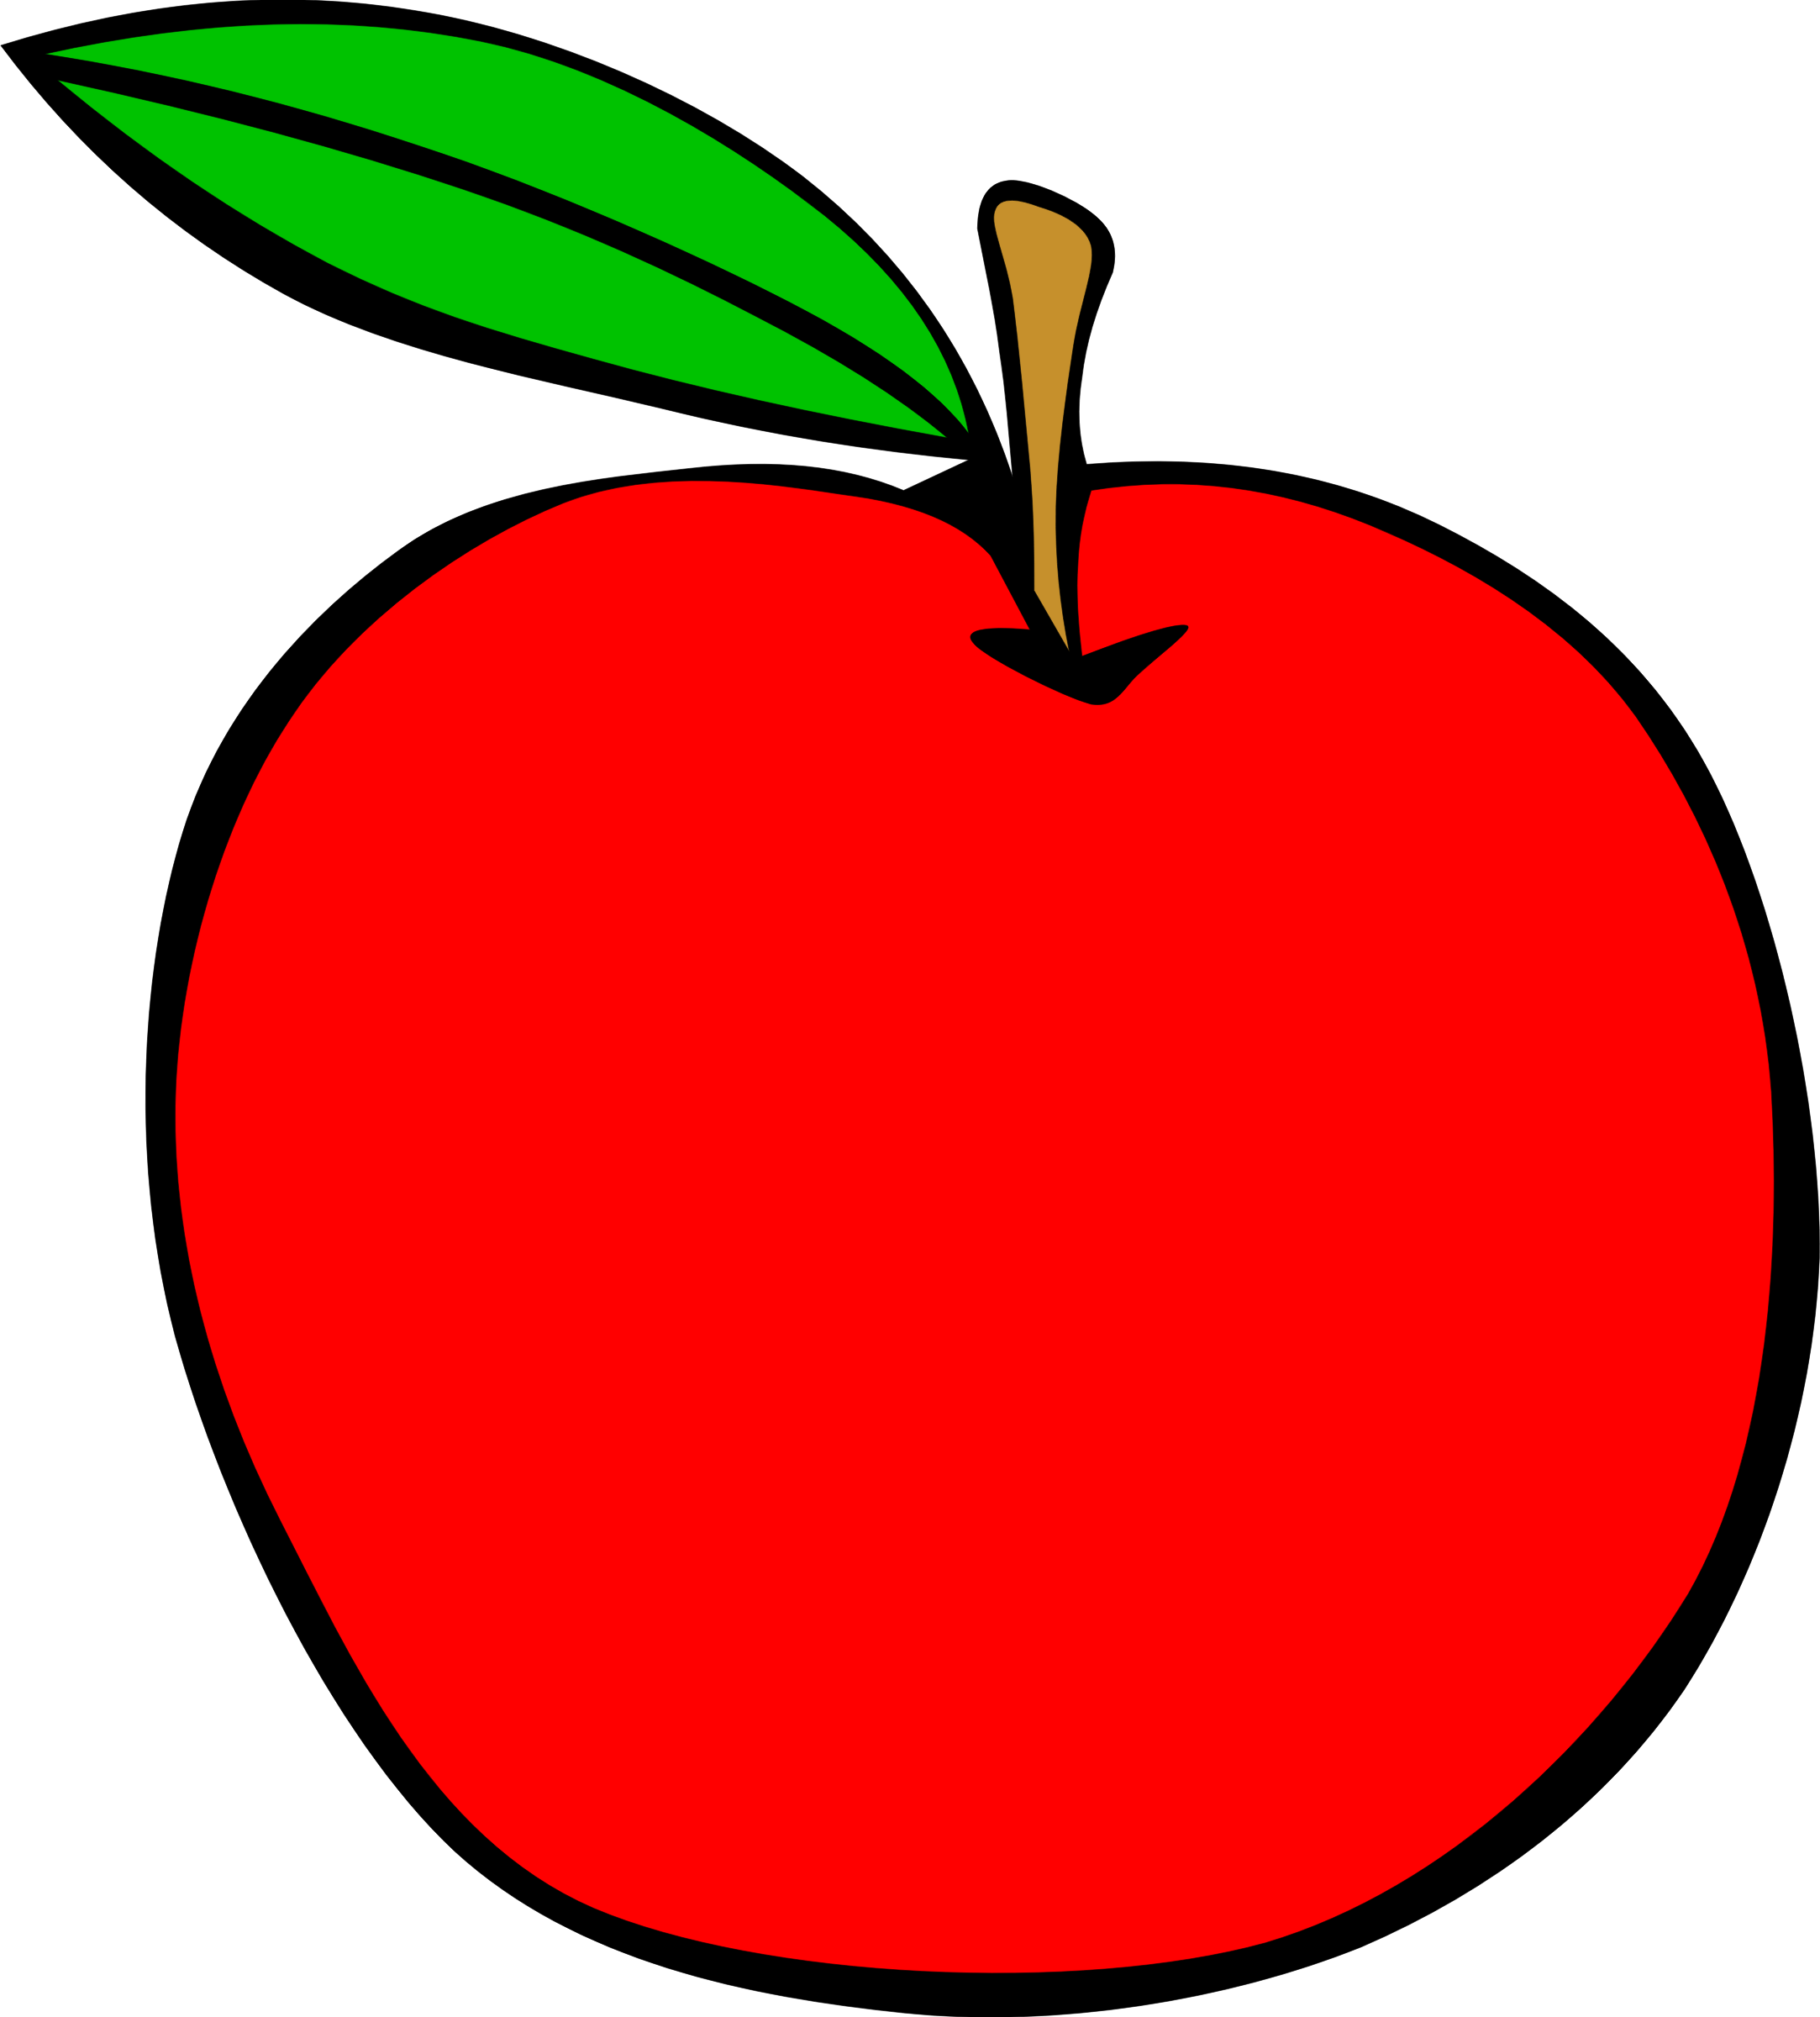 Clipart Apple Clipart Apple Transparent Free For